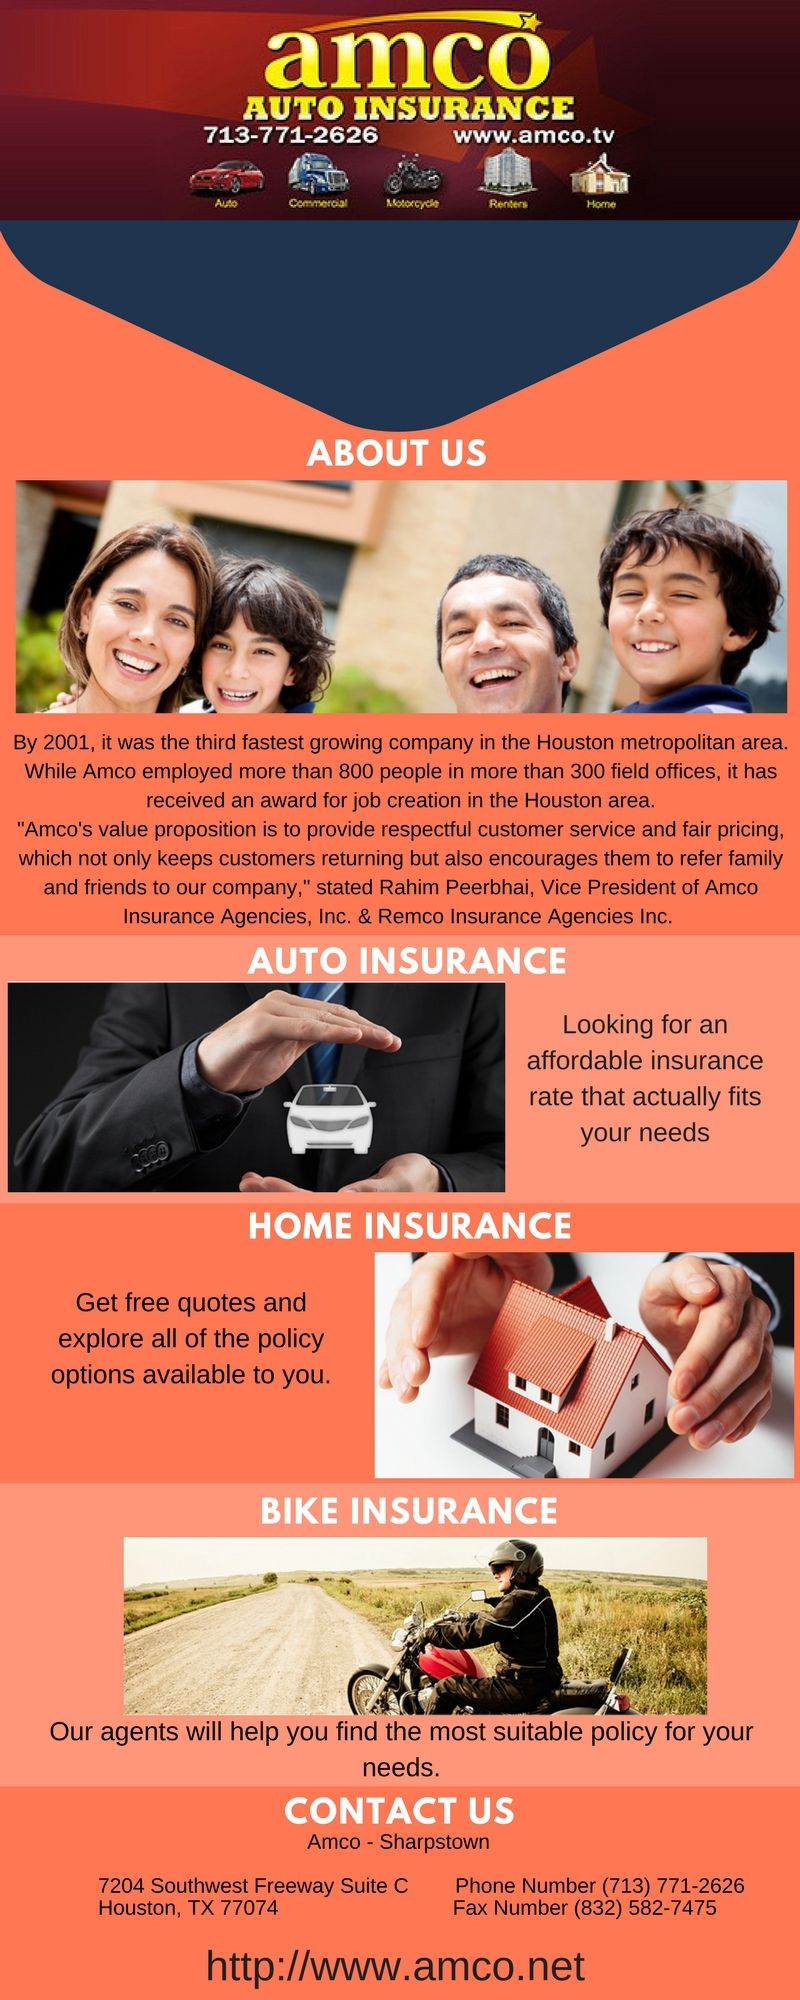 Commercial insurance helps people to protect their